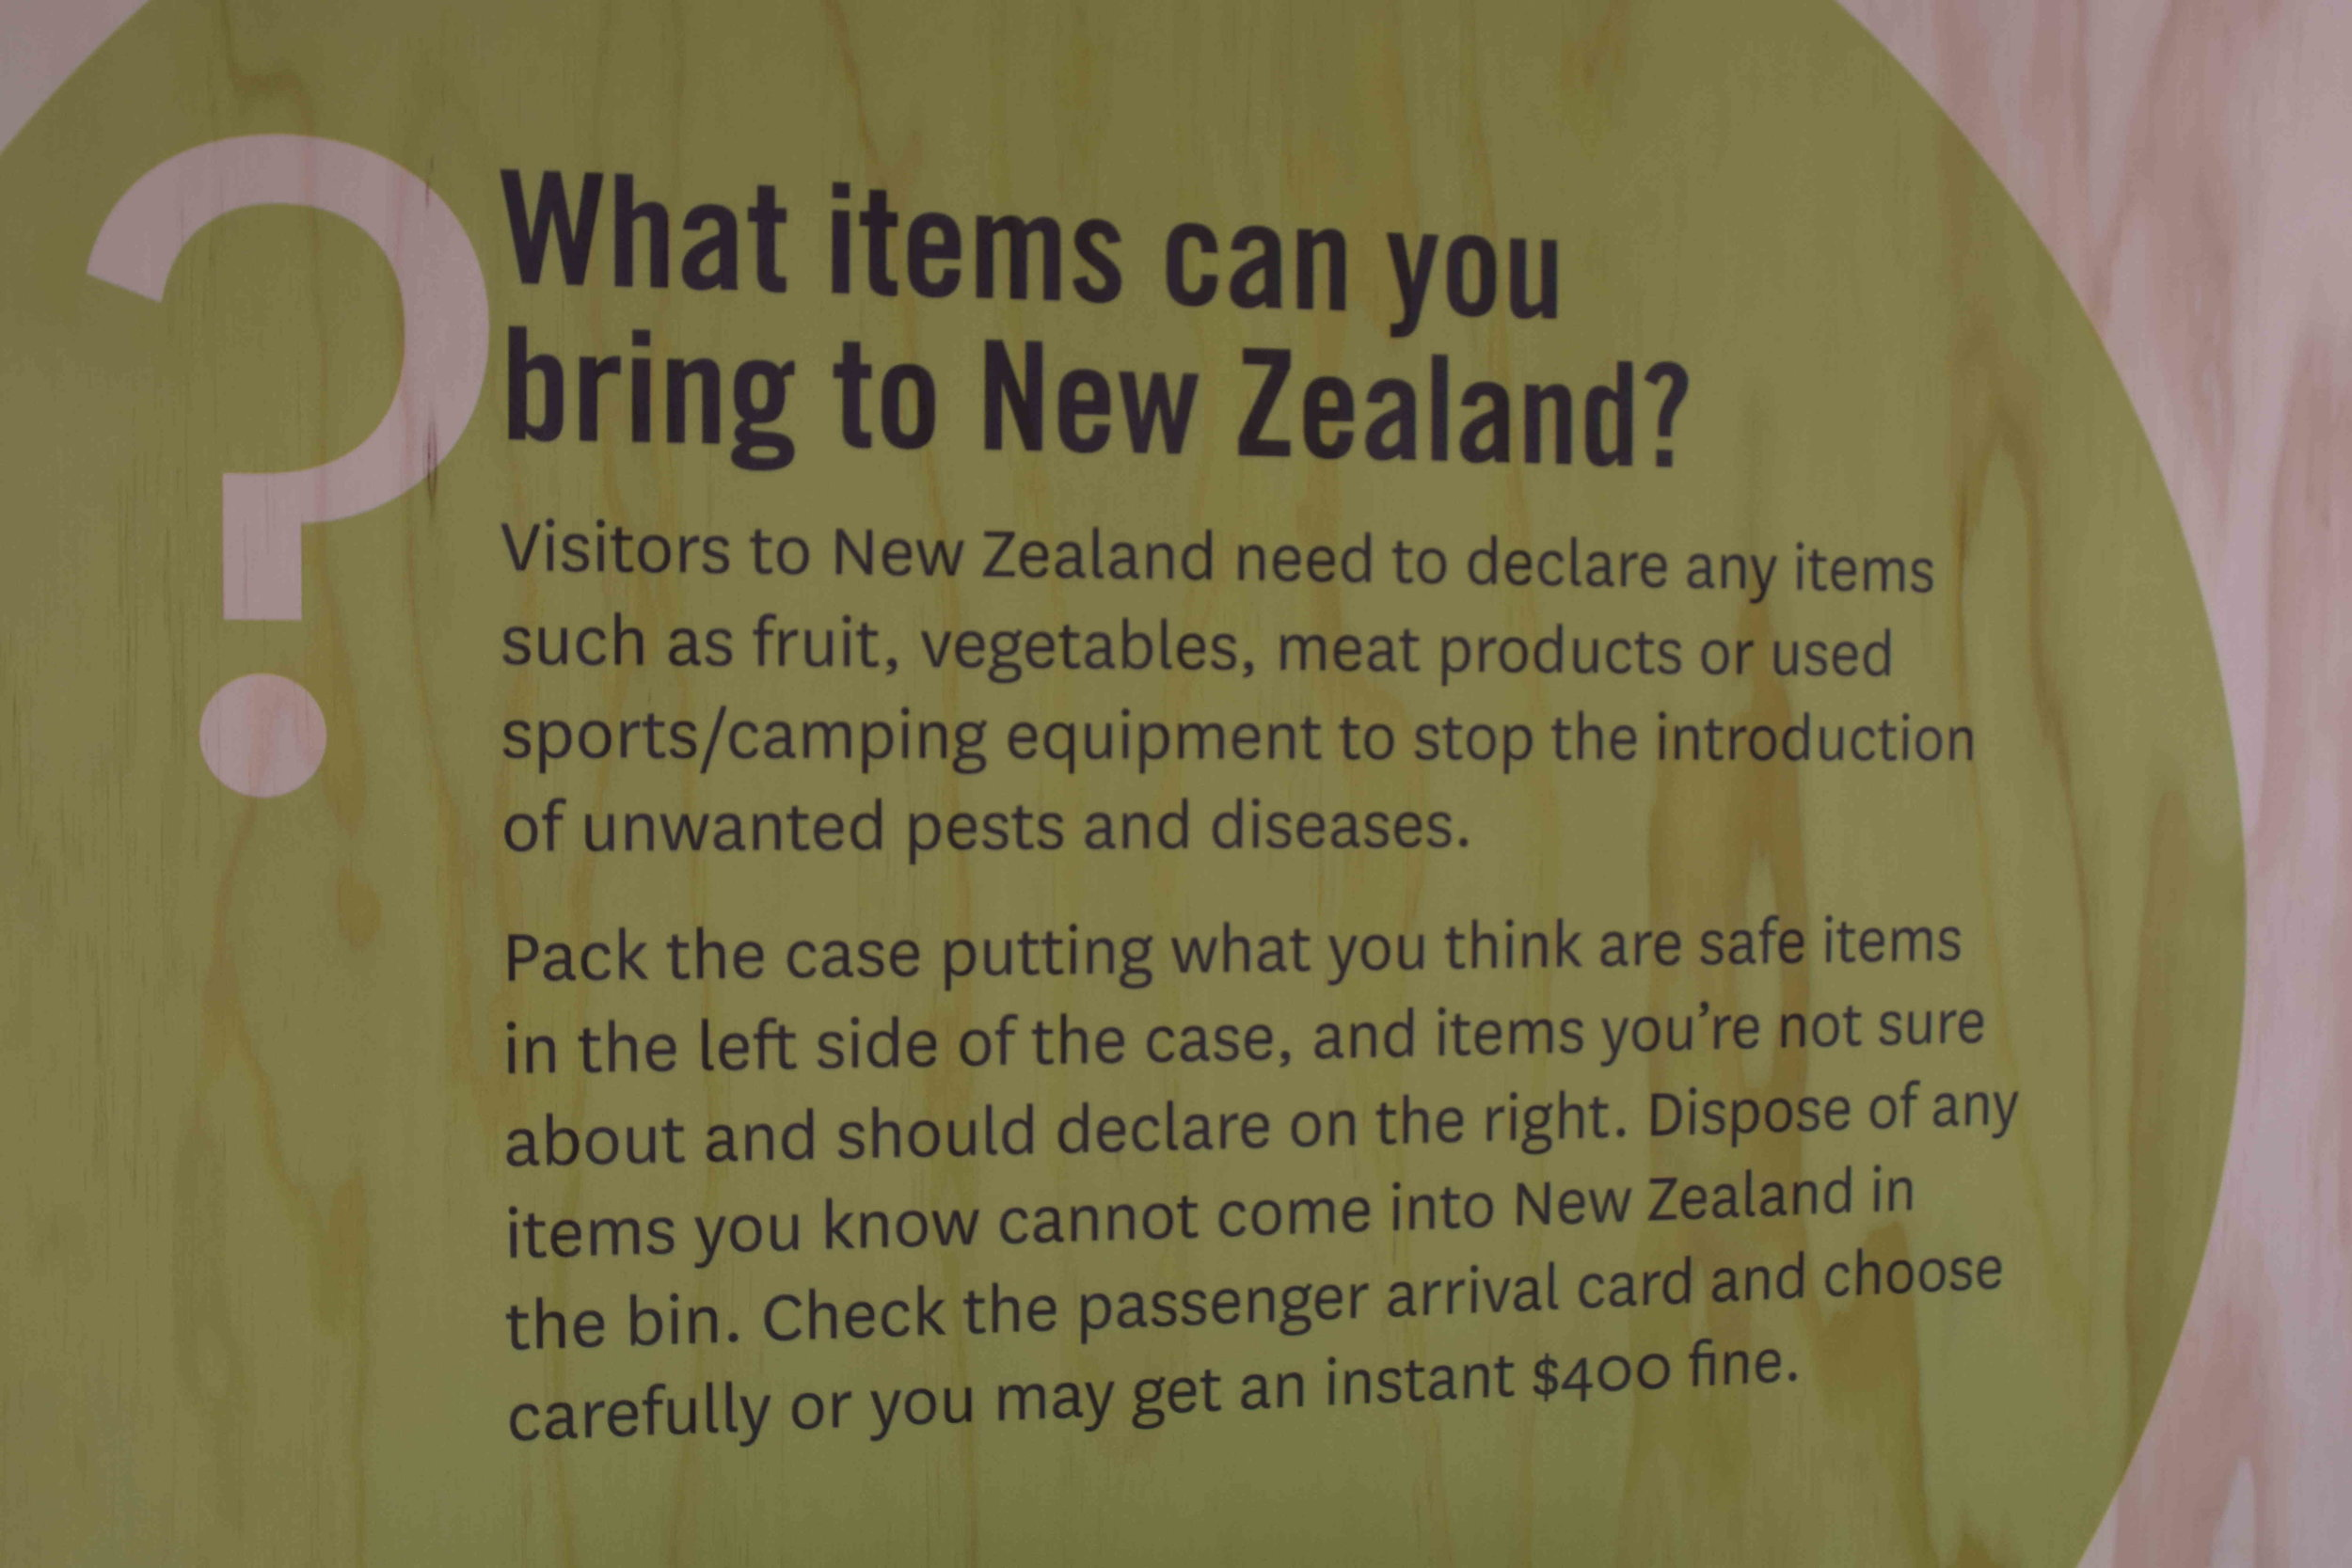 Ministry of Primary Industries' stall - while having information on how people can contribute towards protecting the flora and fauna of New Zealand, also educated recent migrants on what items can be brought to the country